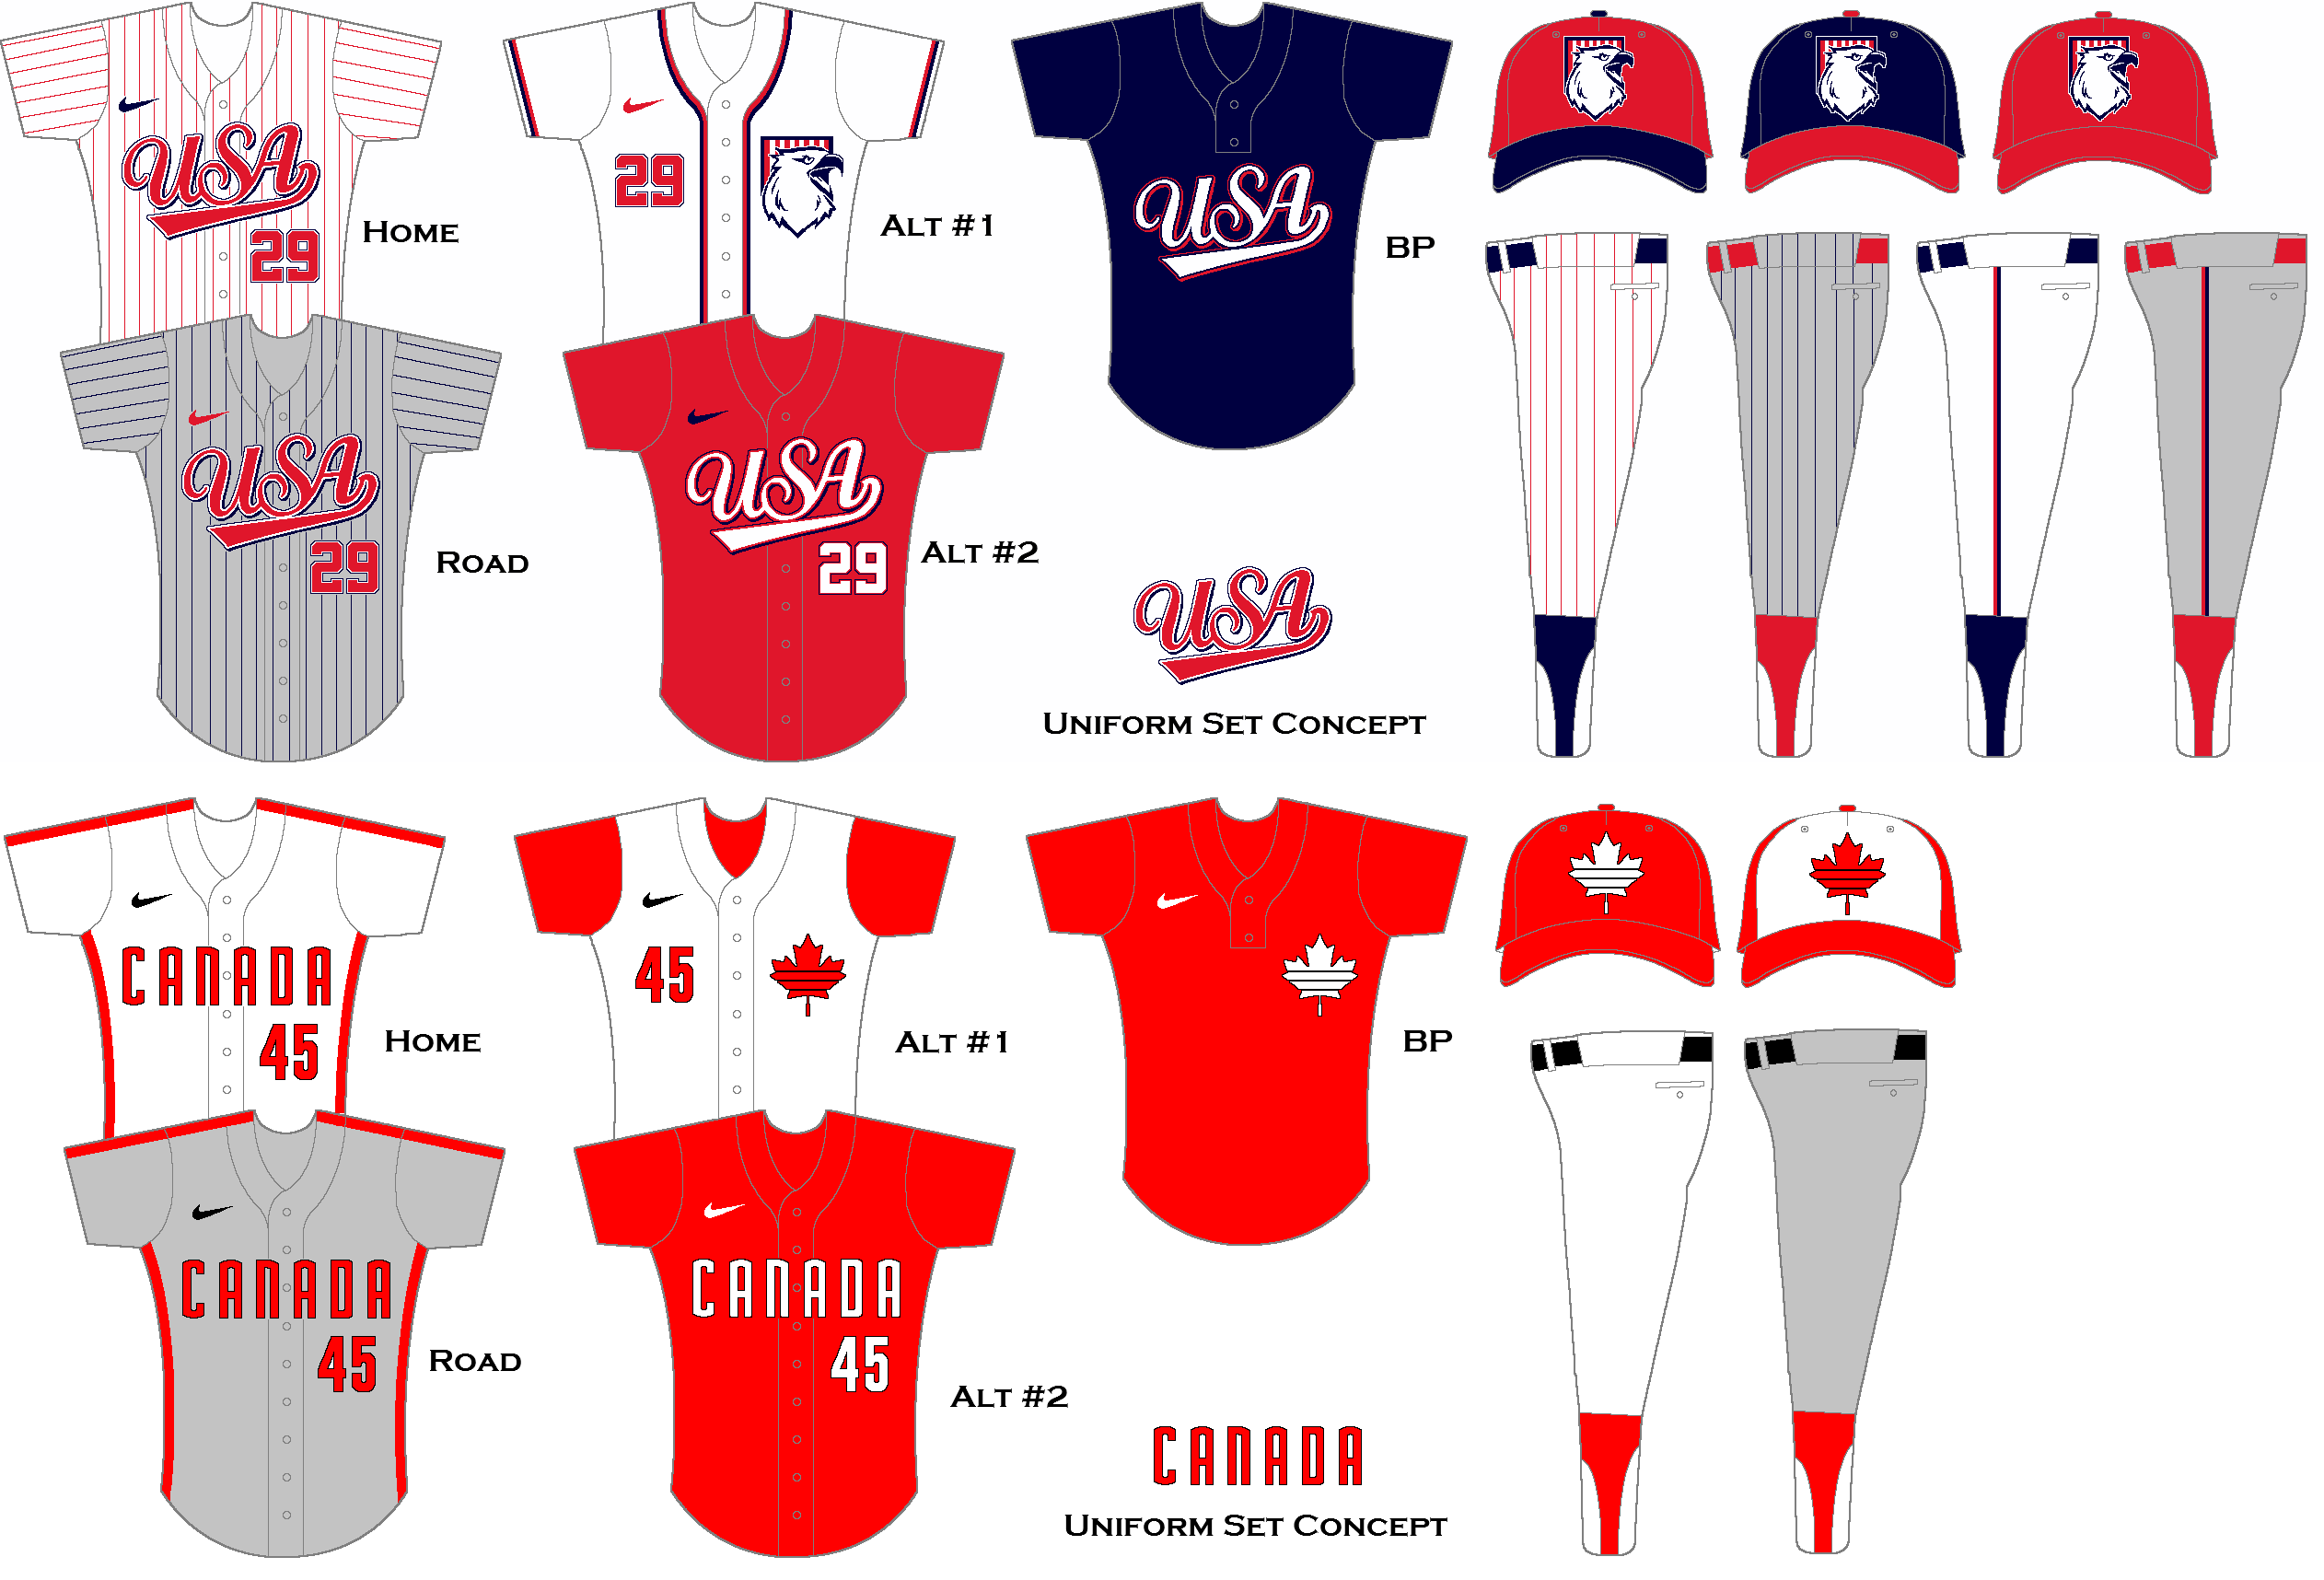 International Baseball Concepts